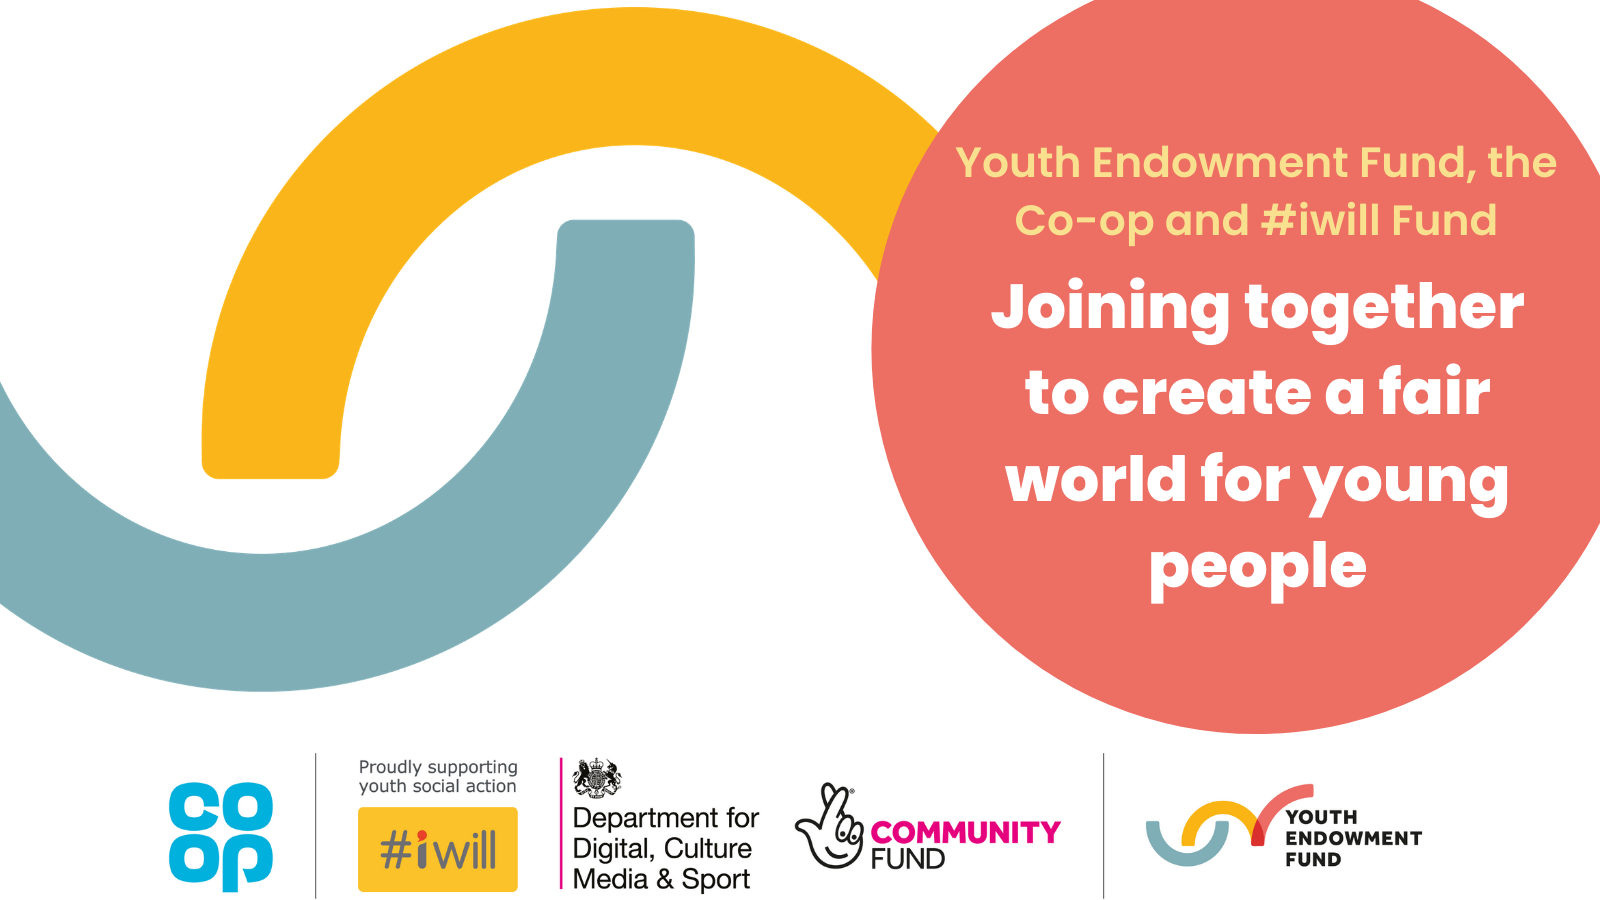 The Youth Endowment Fund, the #iwill Fund and the Co-op join together, empowering young people to create a fairer world